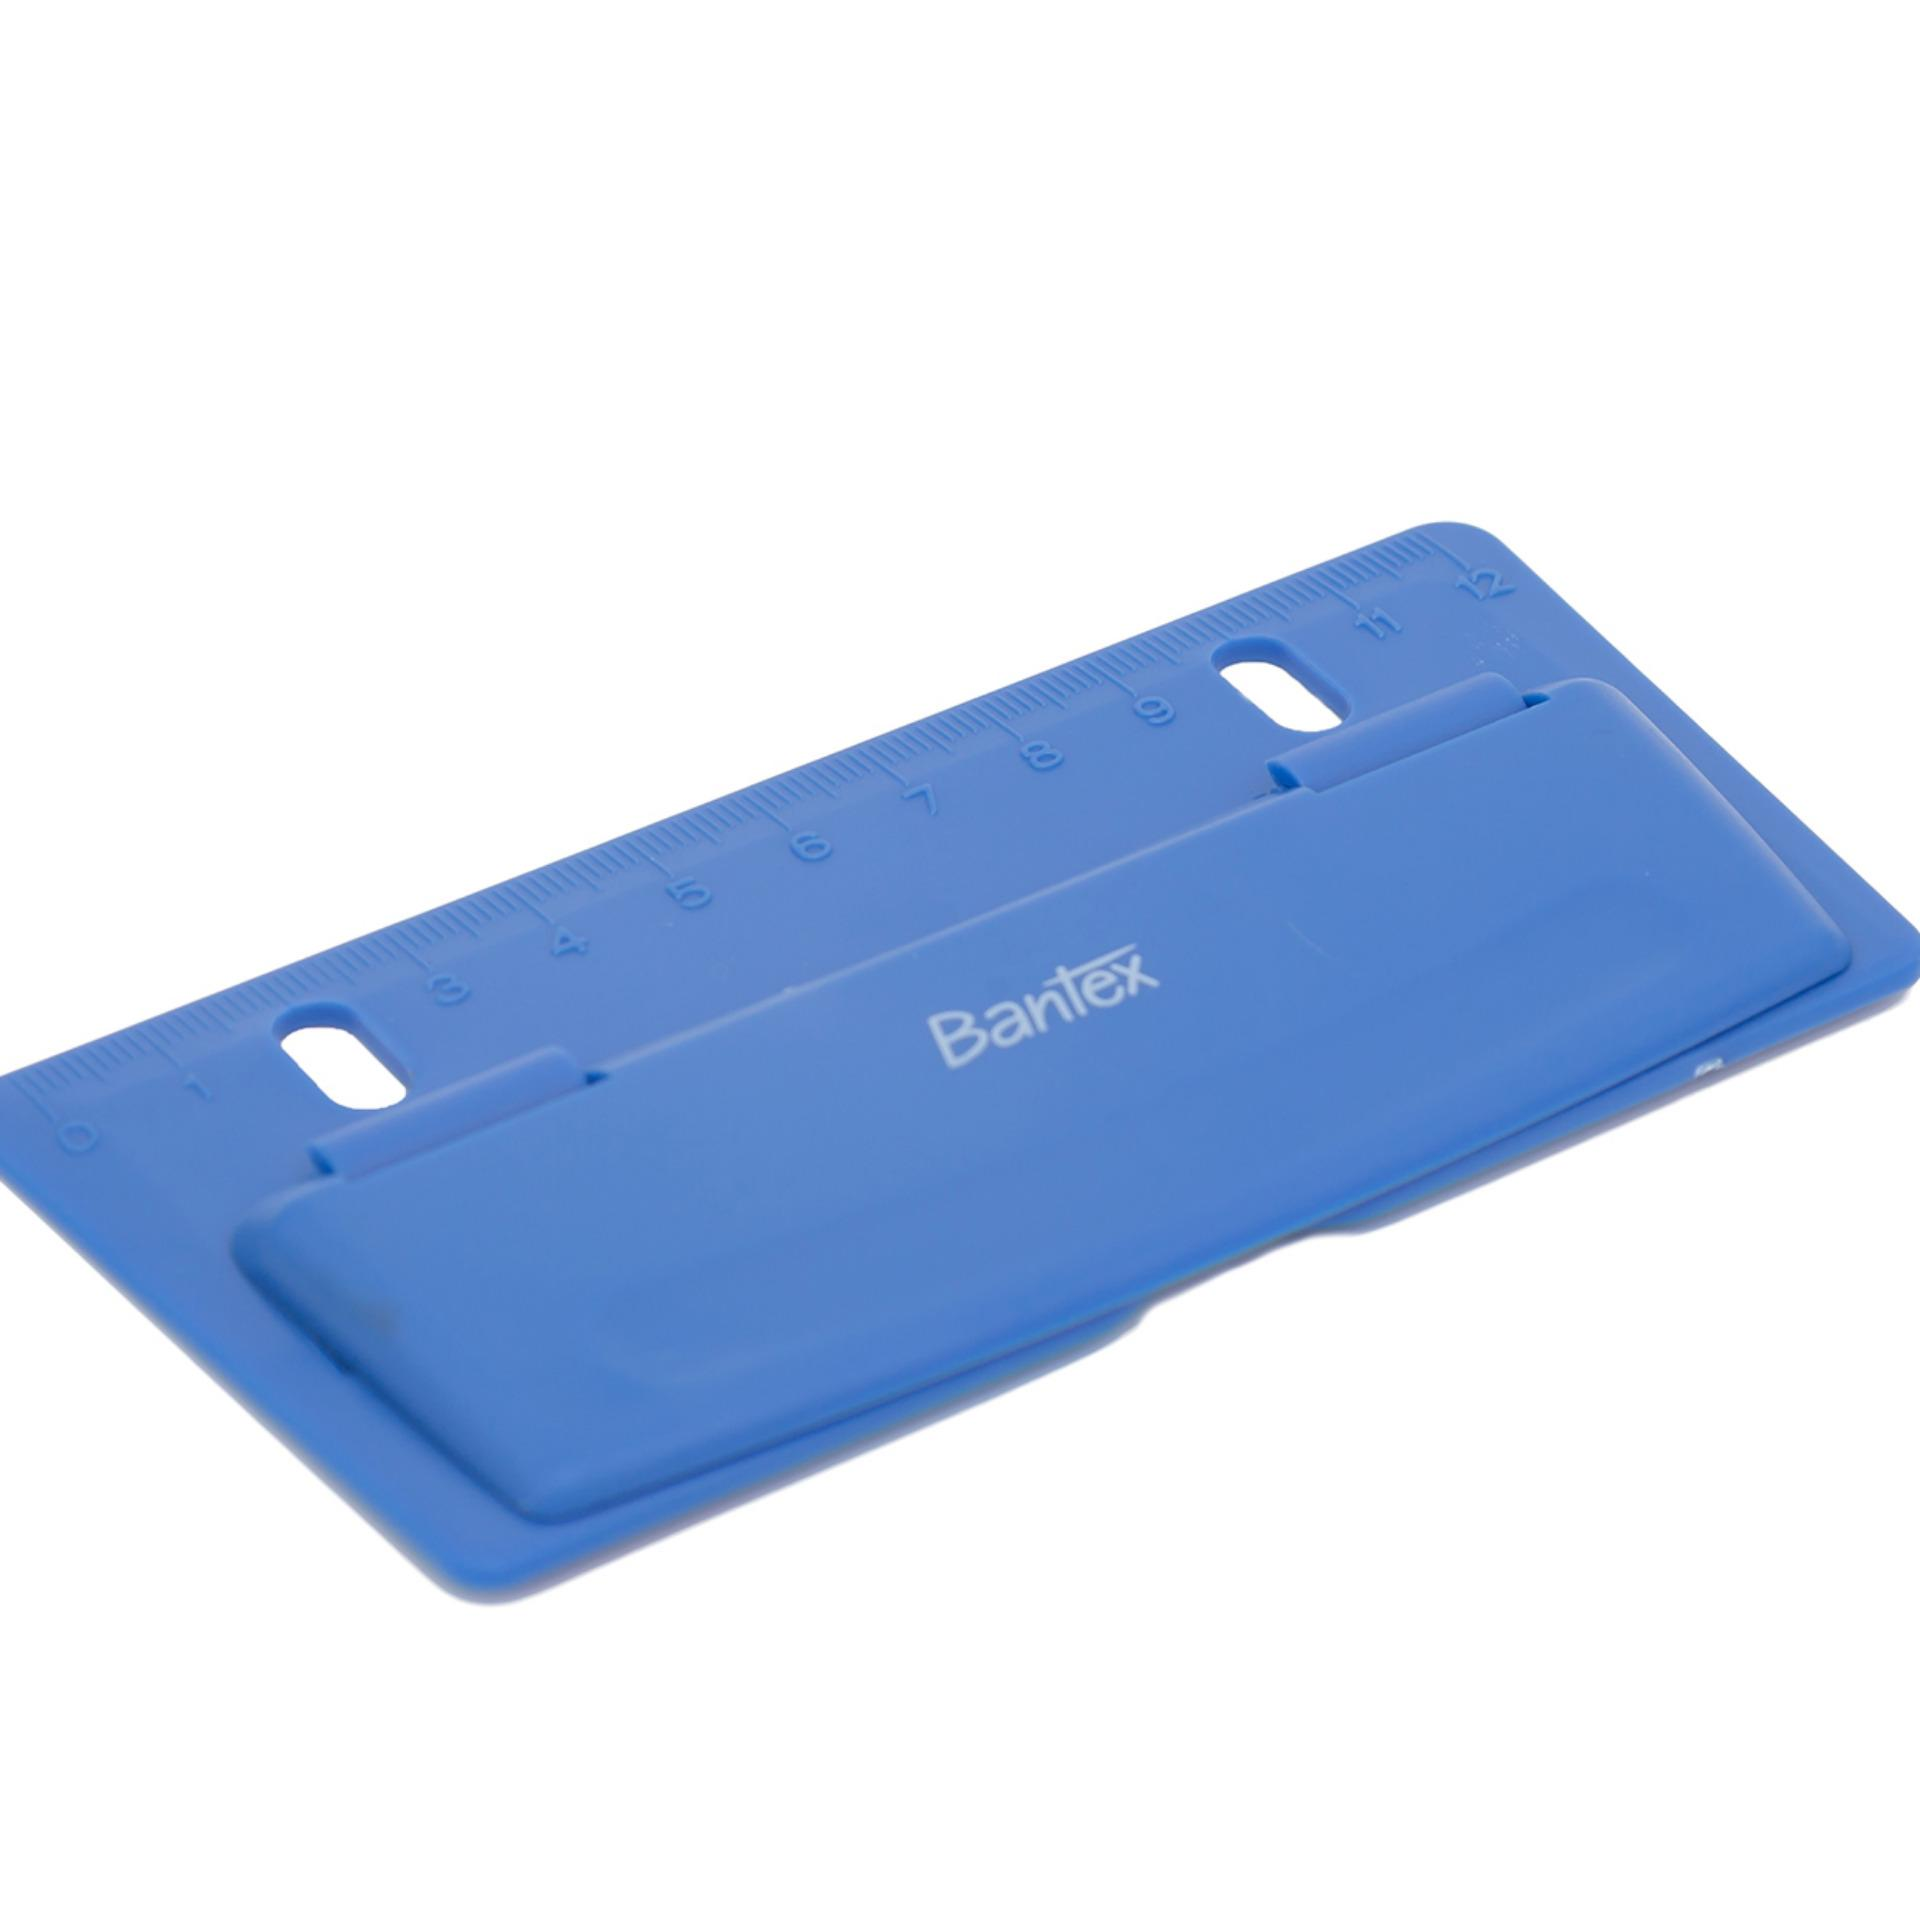 Bantex Quotation Folders With Coloured Back Cover A4 Red 3230 096 Blue 01 Mini Punch 2 Holes 5 Sheets Per Cobalt 9319 00